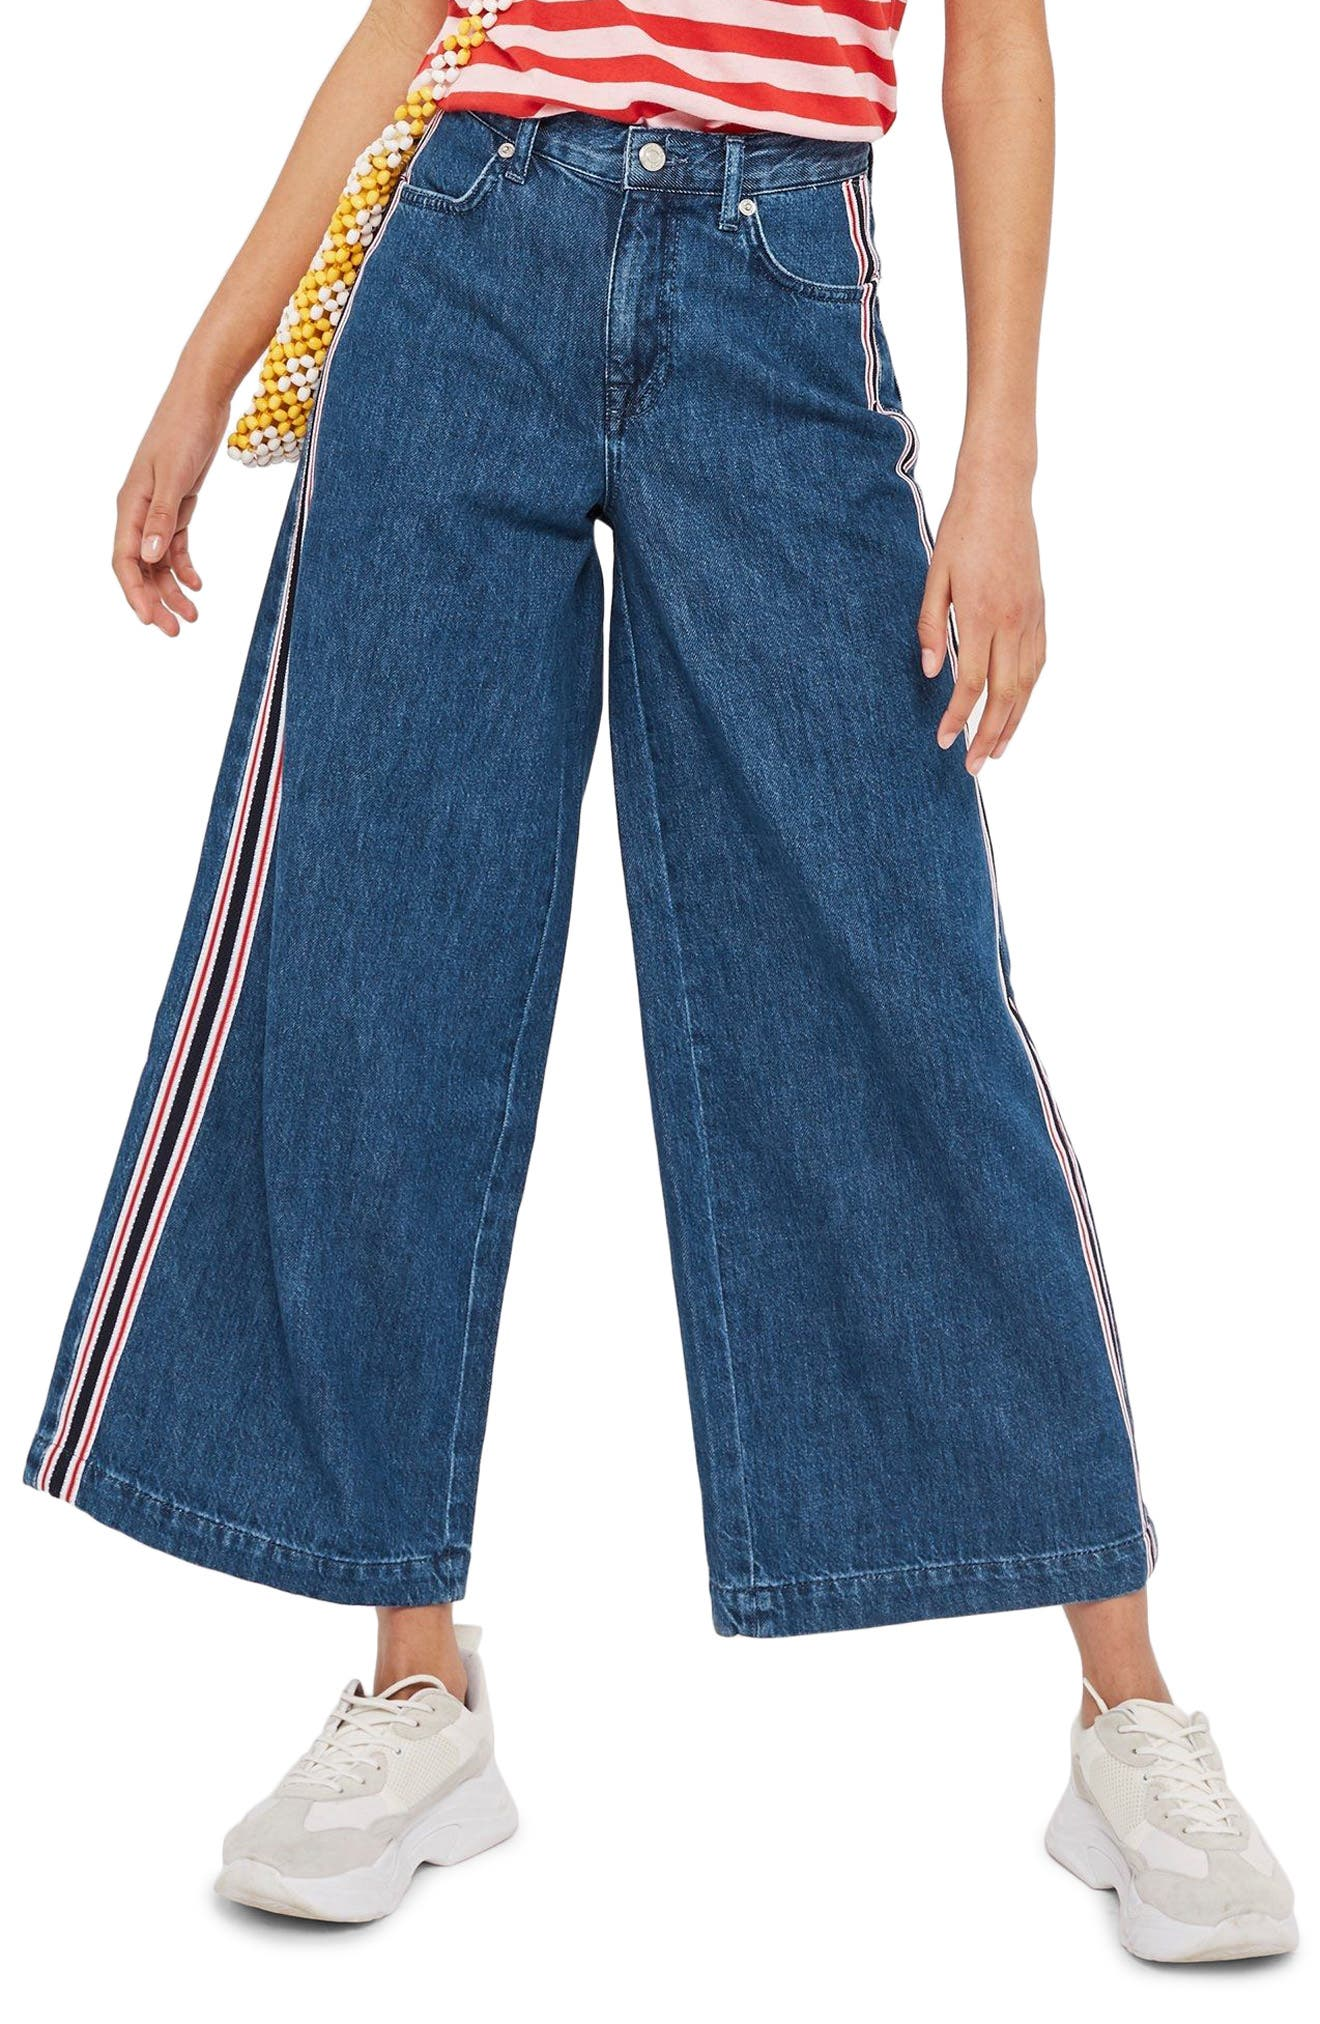 MOTO Stripe Wide Leg Non-Stretch Jeans,                         Main,                         color, 400